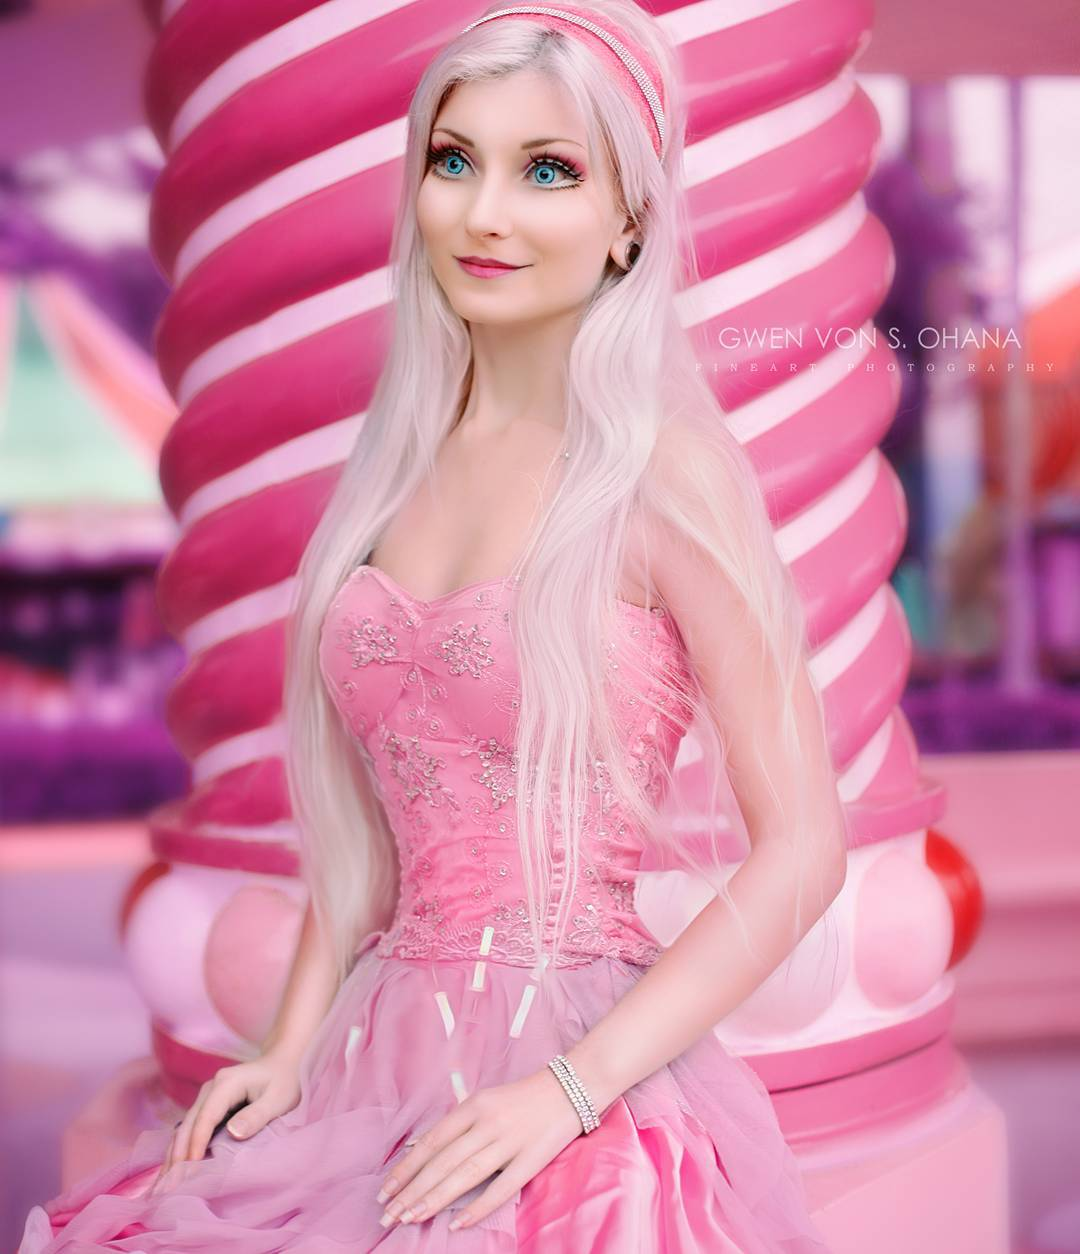 a-new-human-barbie-when-will-this-trend-fall-into-oblivion-06